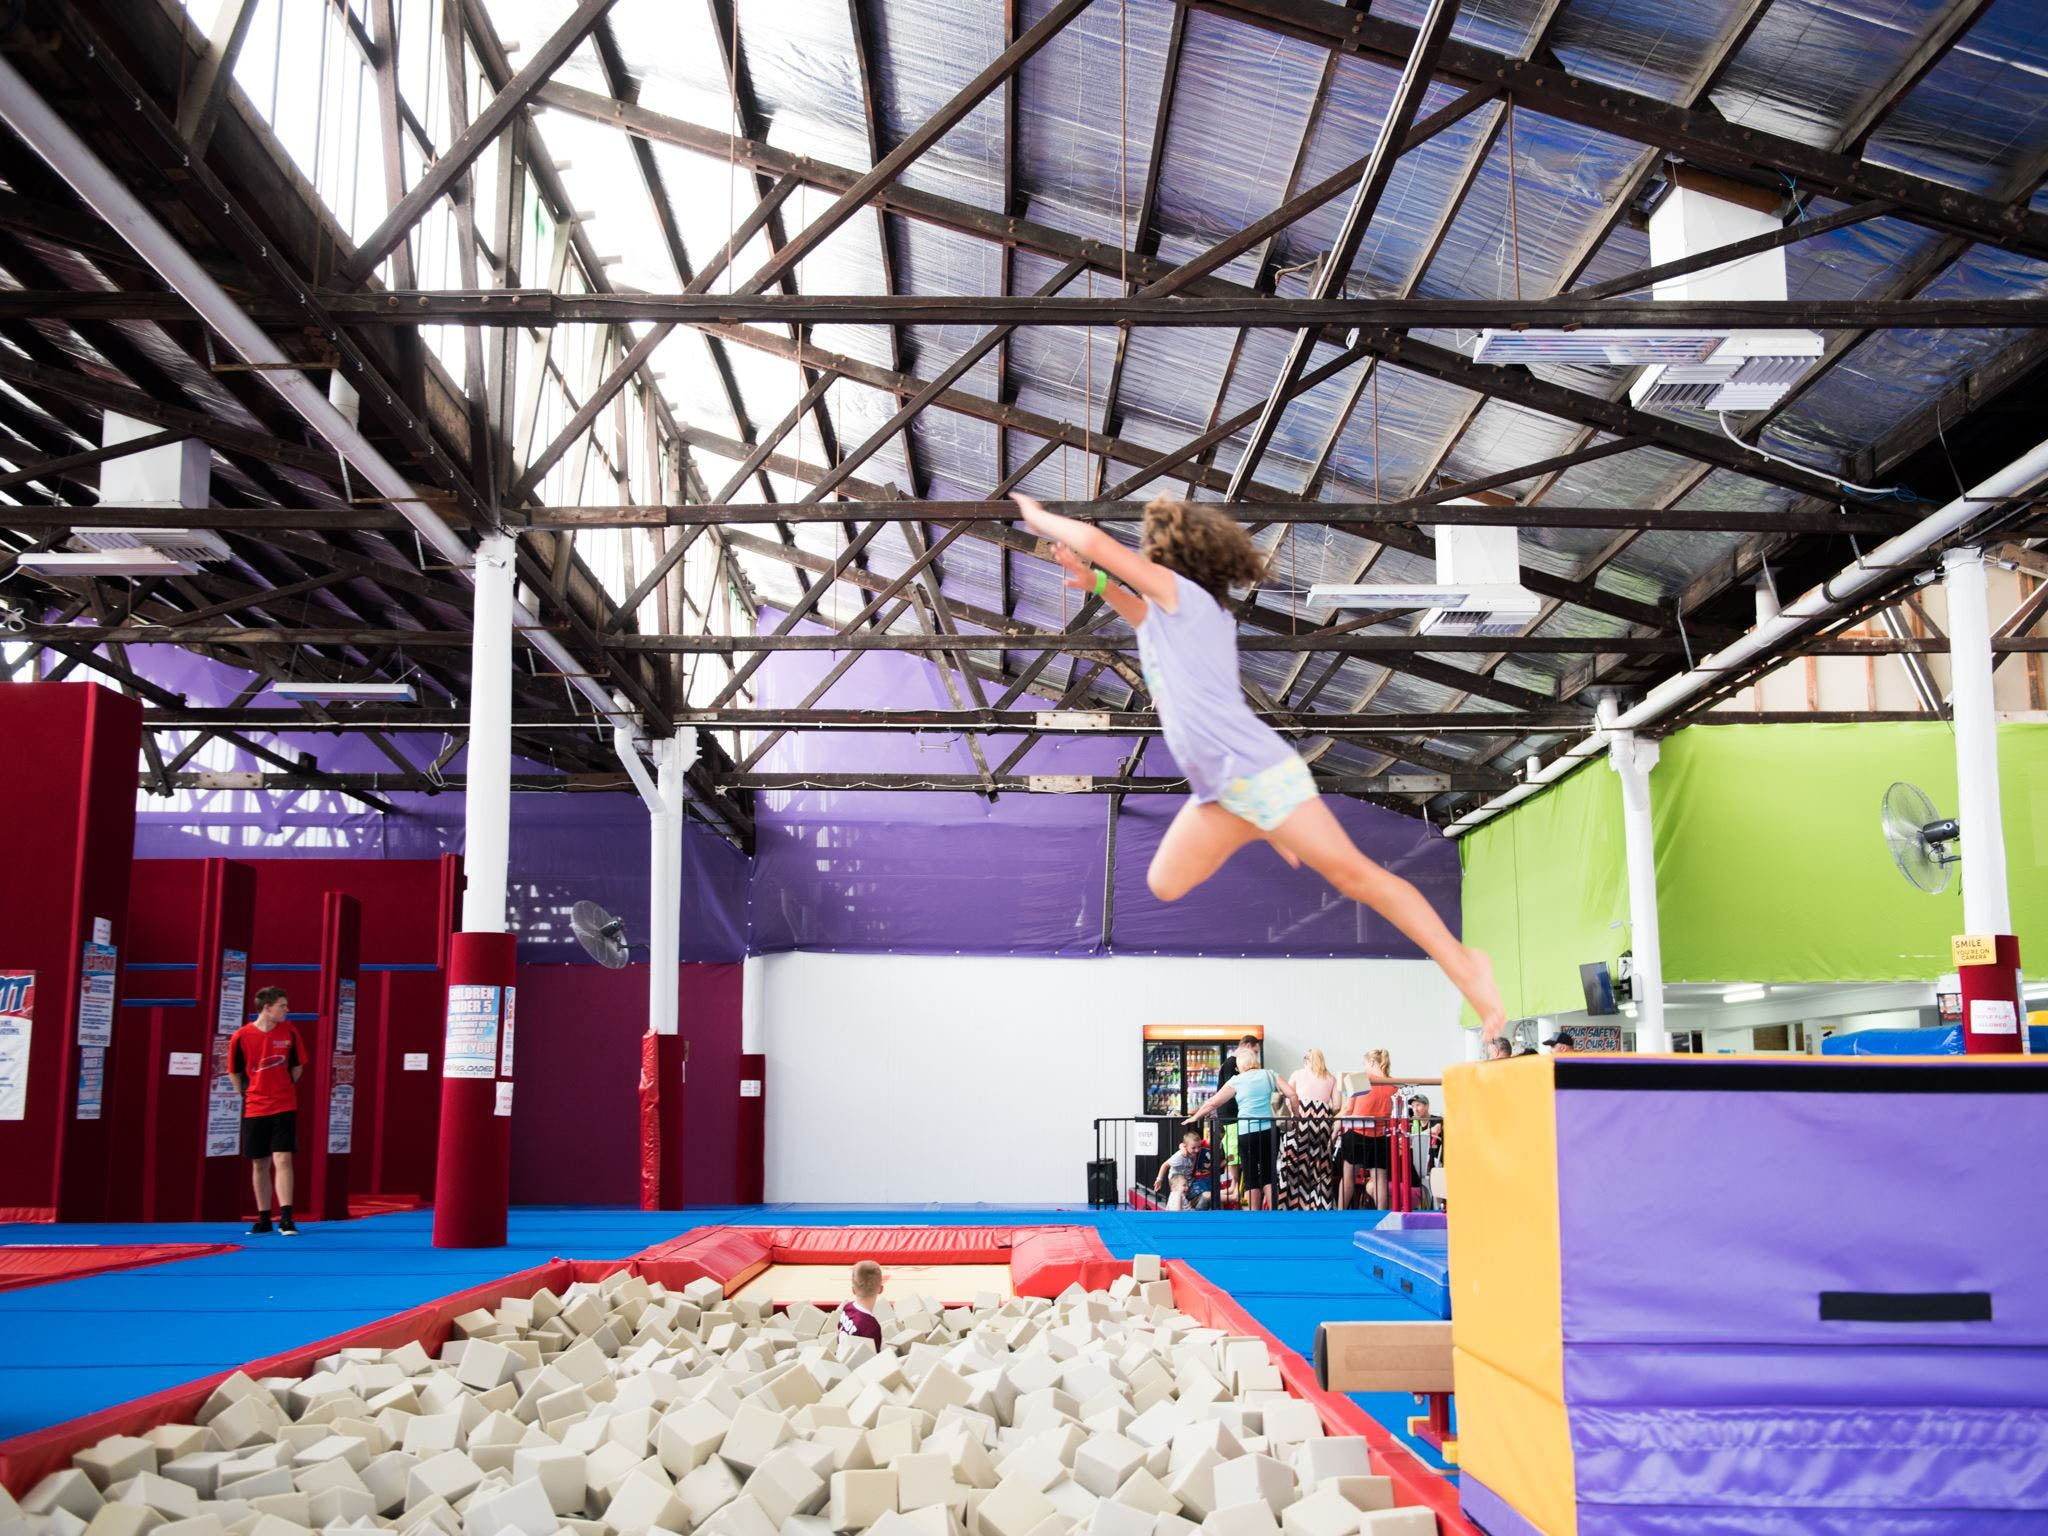 Springloaded Trampoline - Find Attractions